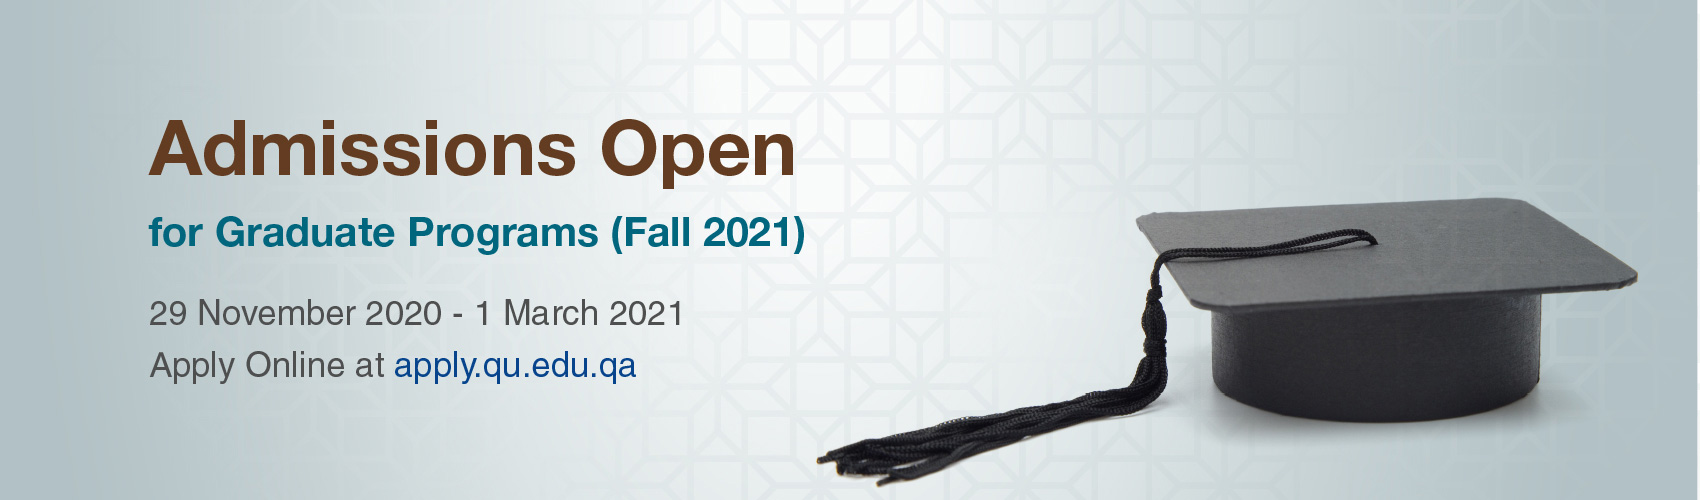 Admissions Open for graduate programs Fall 2021 from november 2020 till 1 March 2021